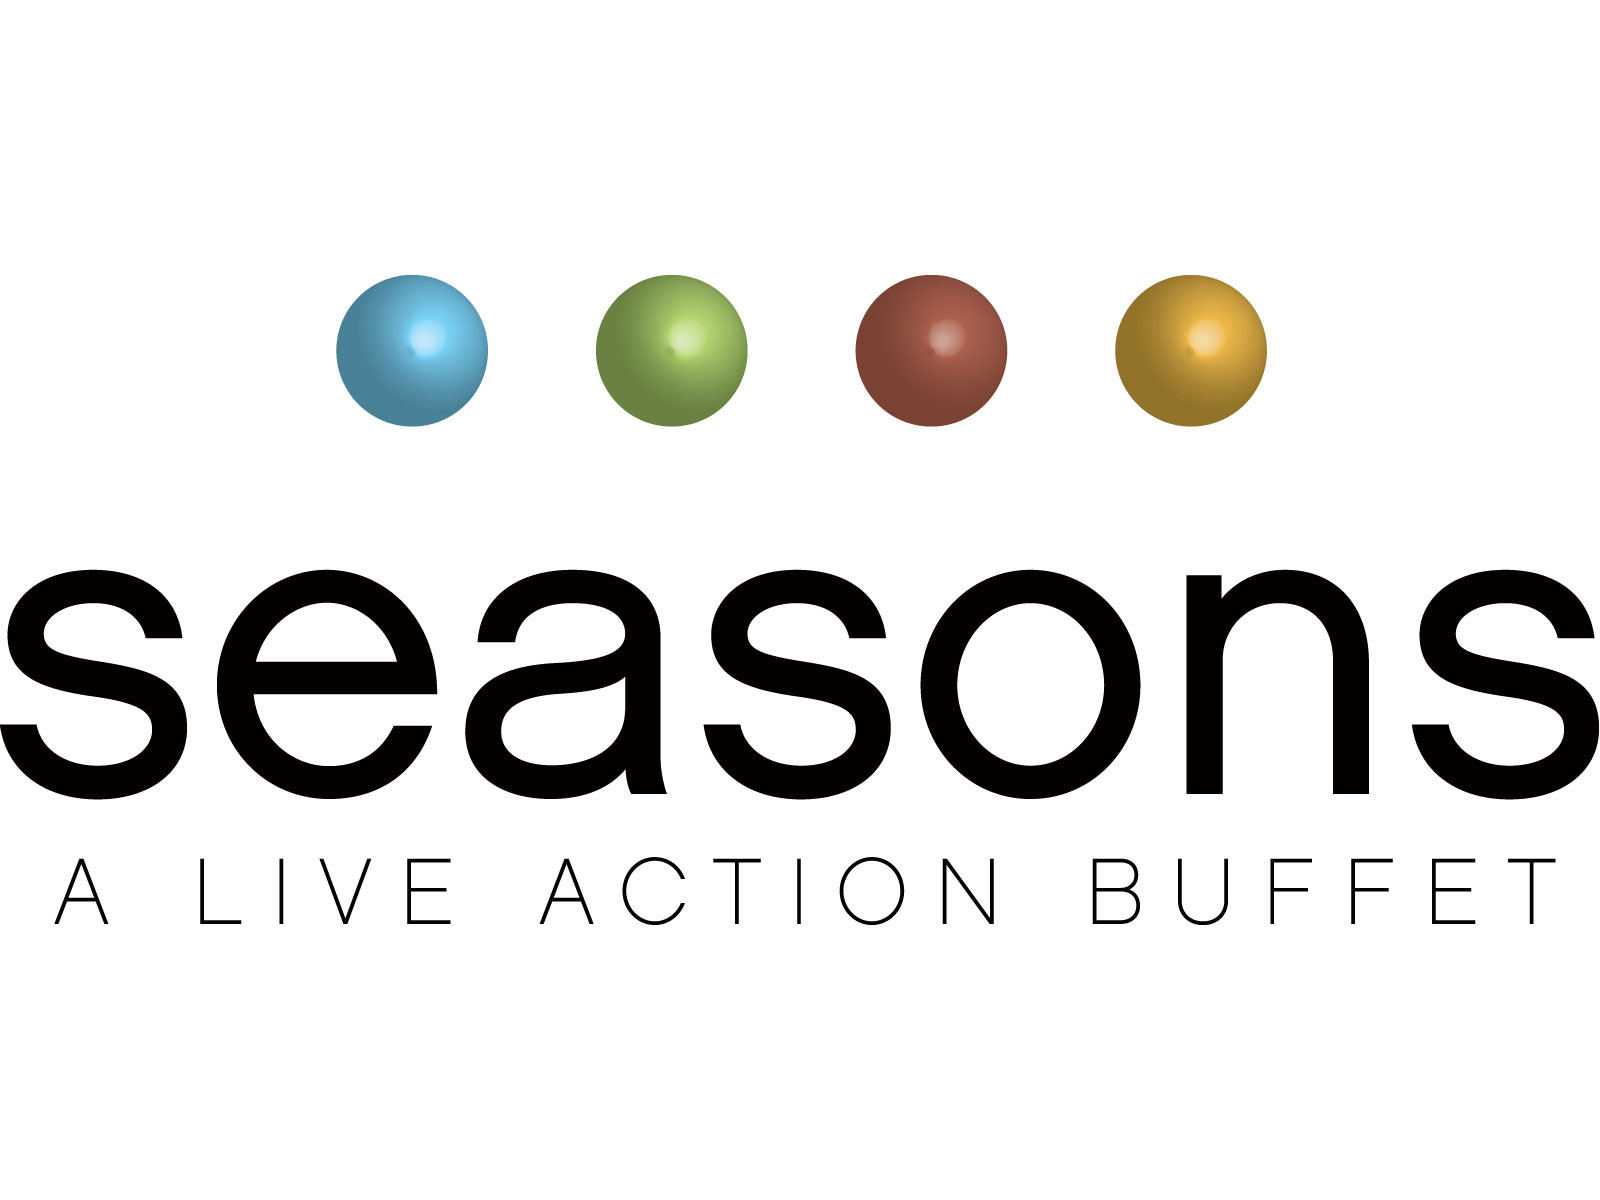 Silverton Seasons Restaurant Name